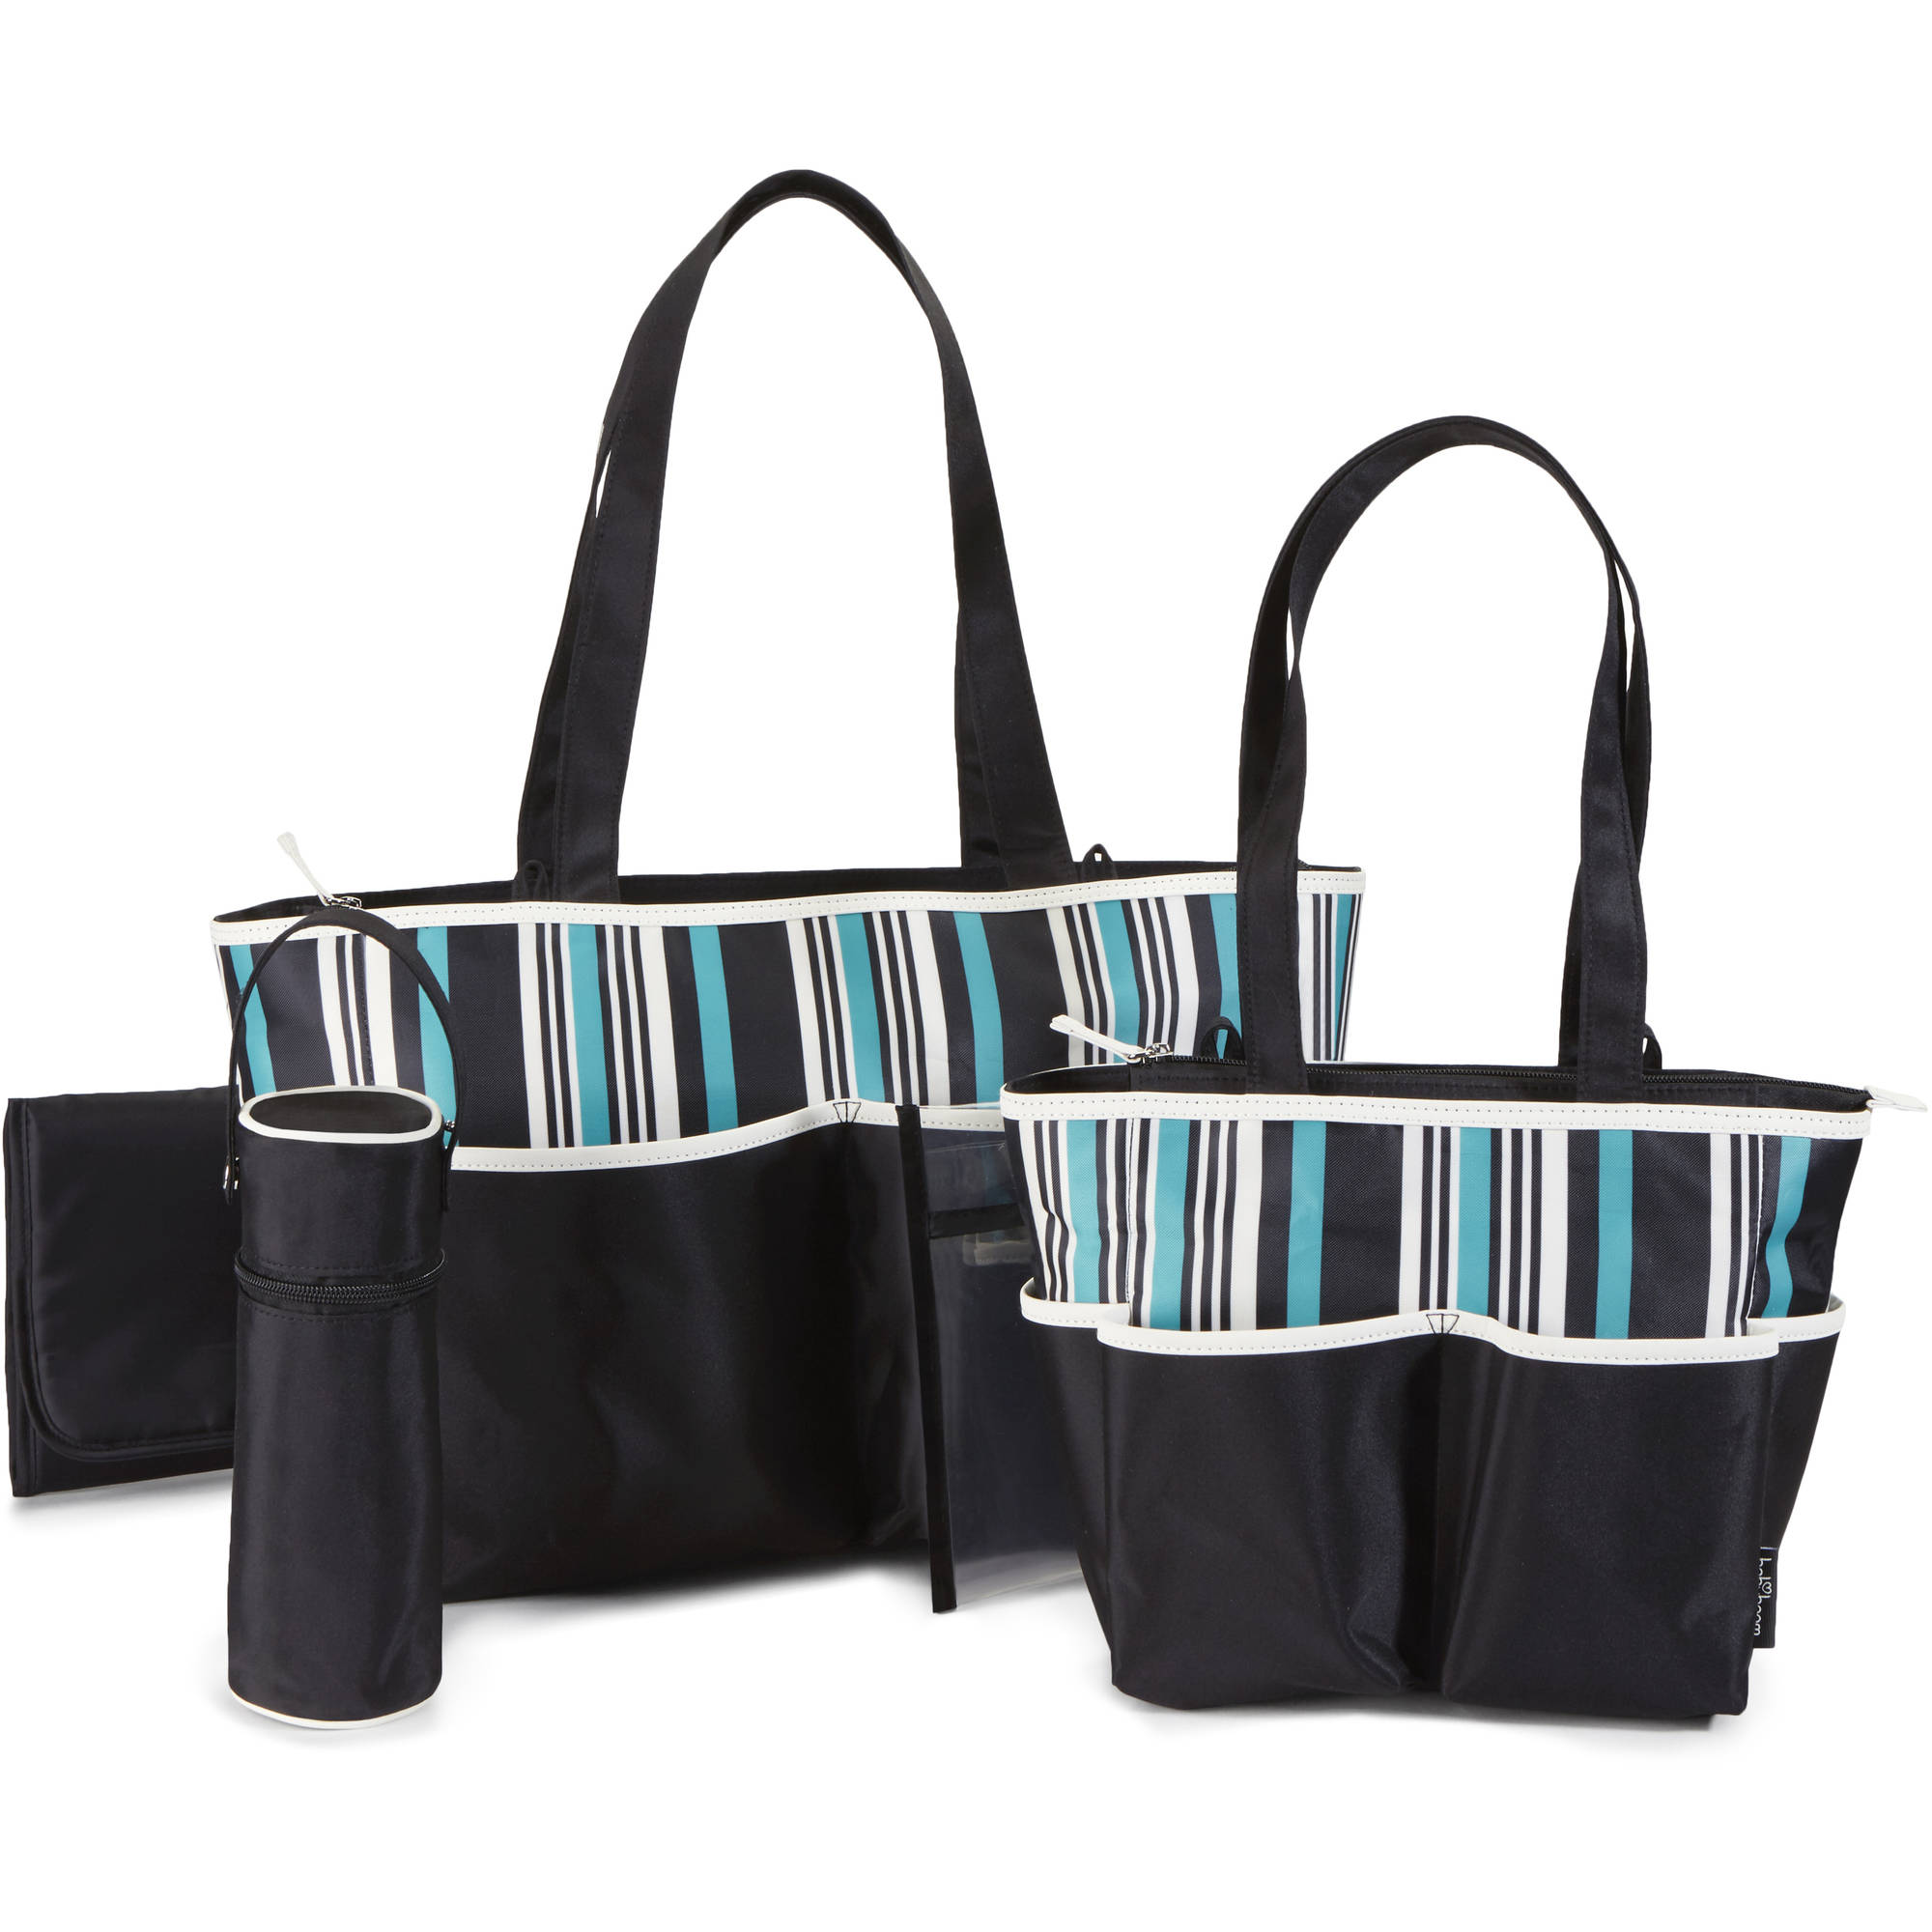 Baby Boom Tote Diaper Bag 5pc set, Striped